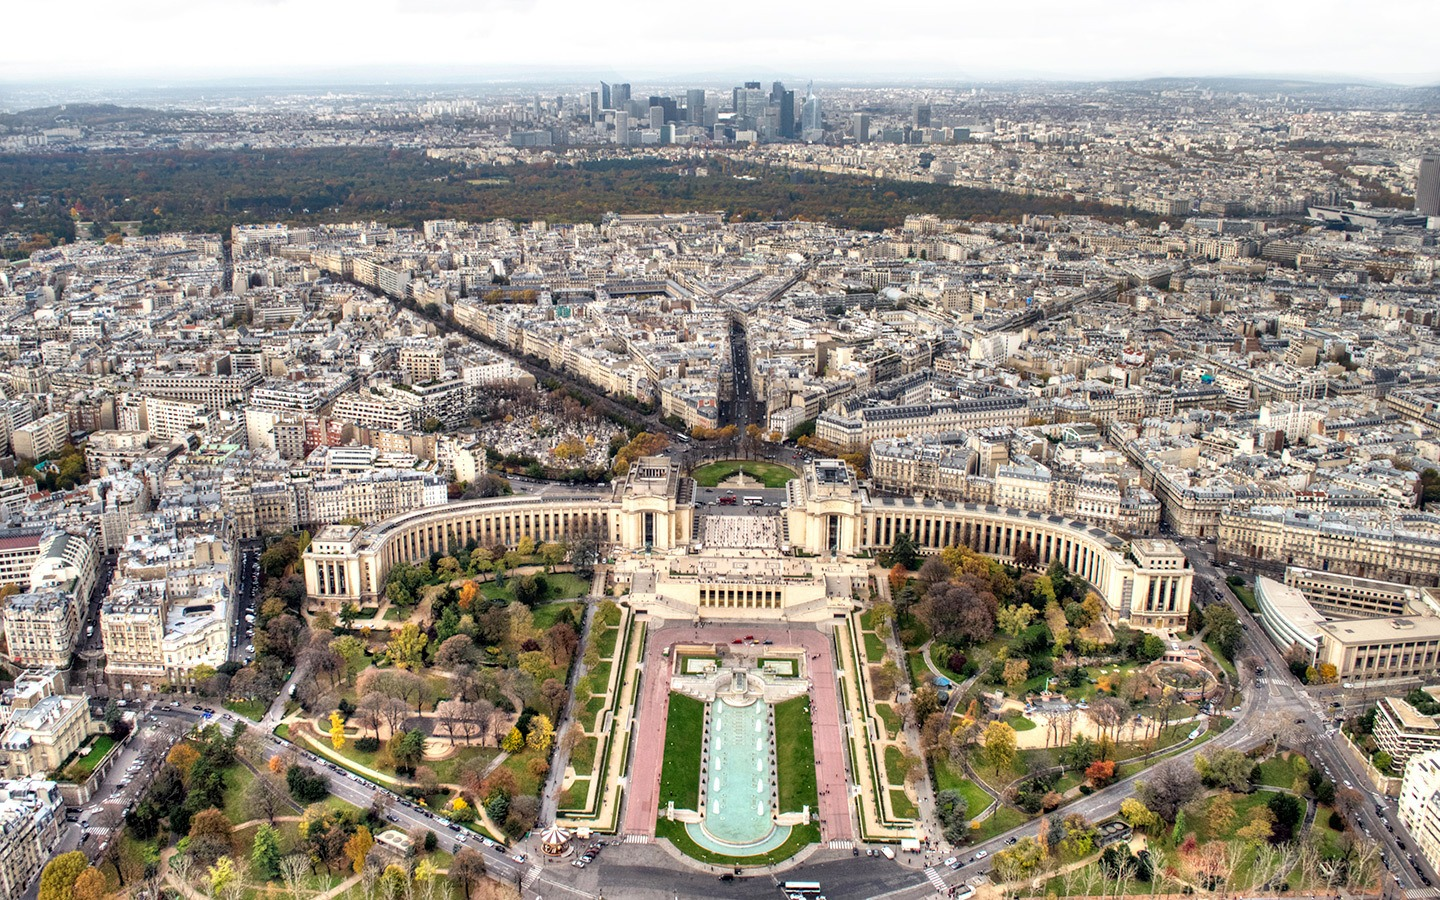 View across to Trocadero from the second floor of the Eiffel Tower